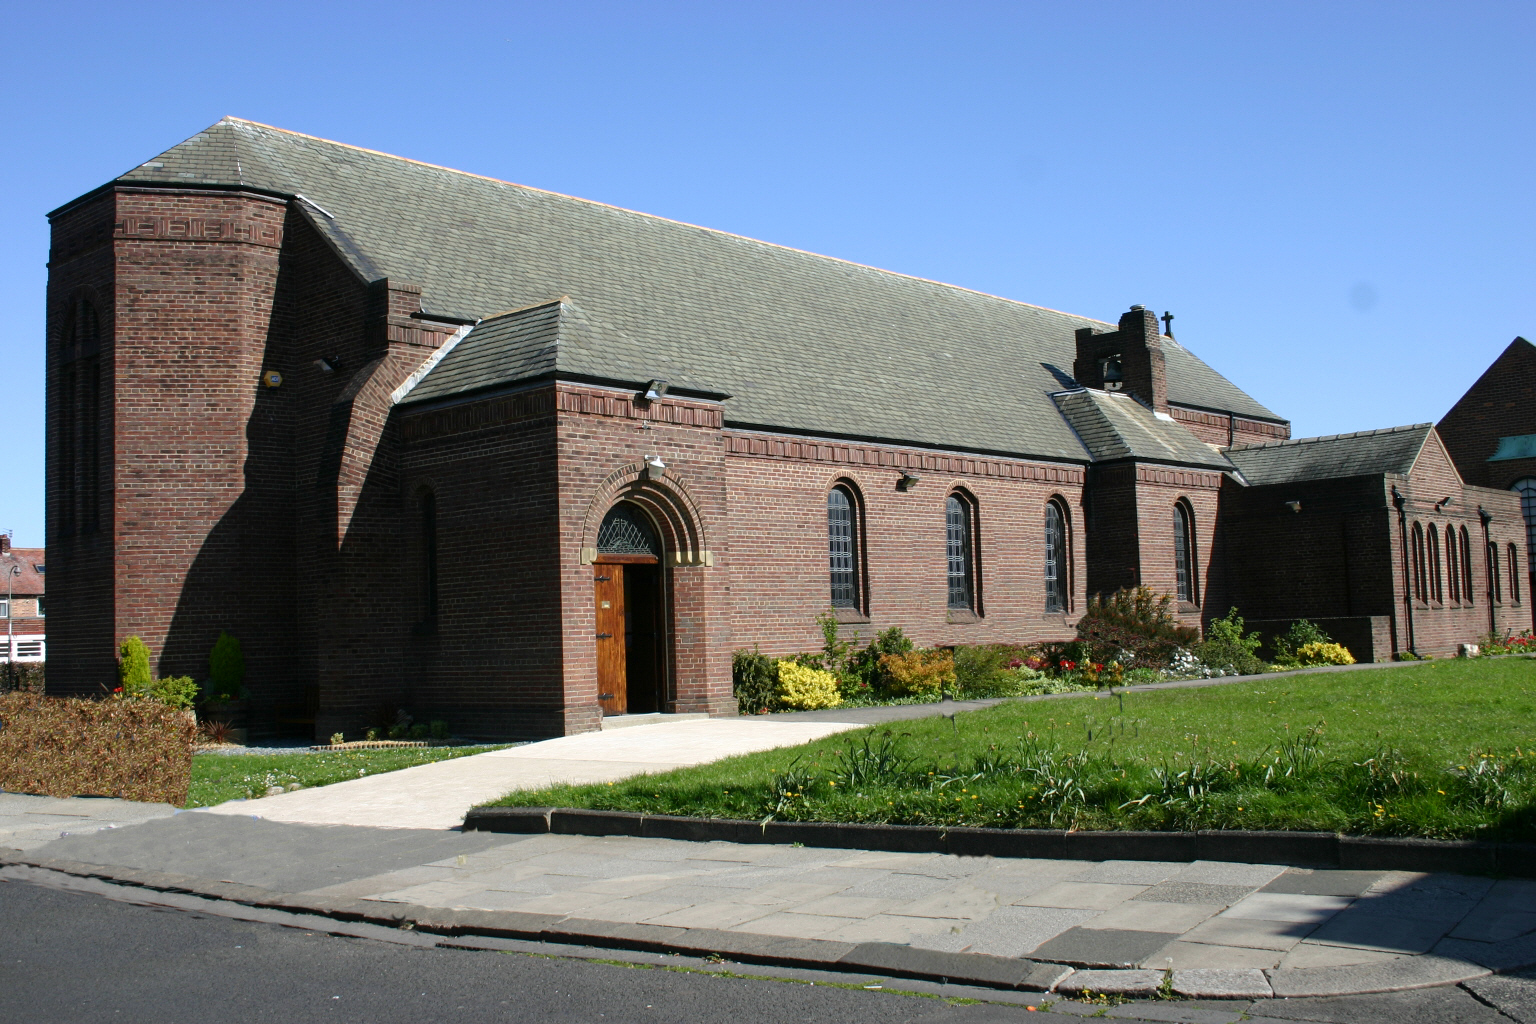 St Peter's Church - Monkseaton